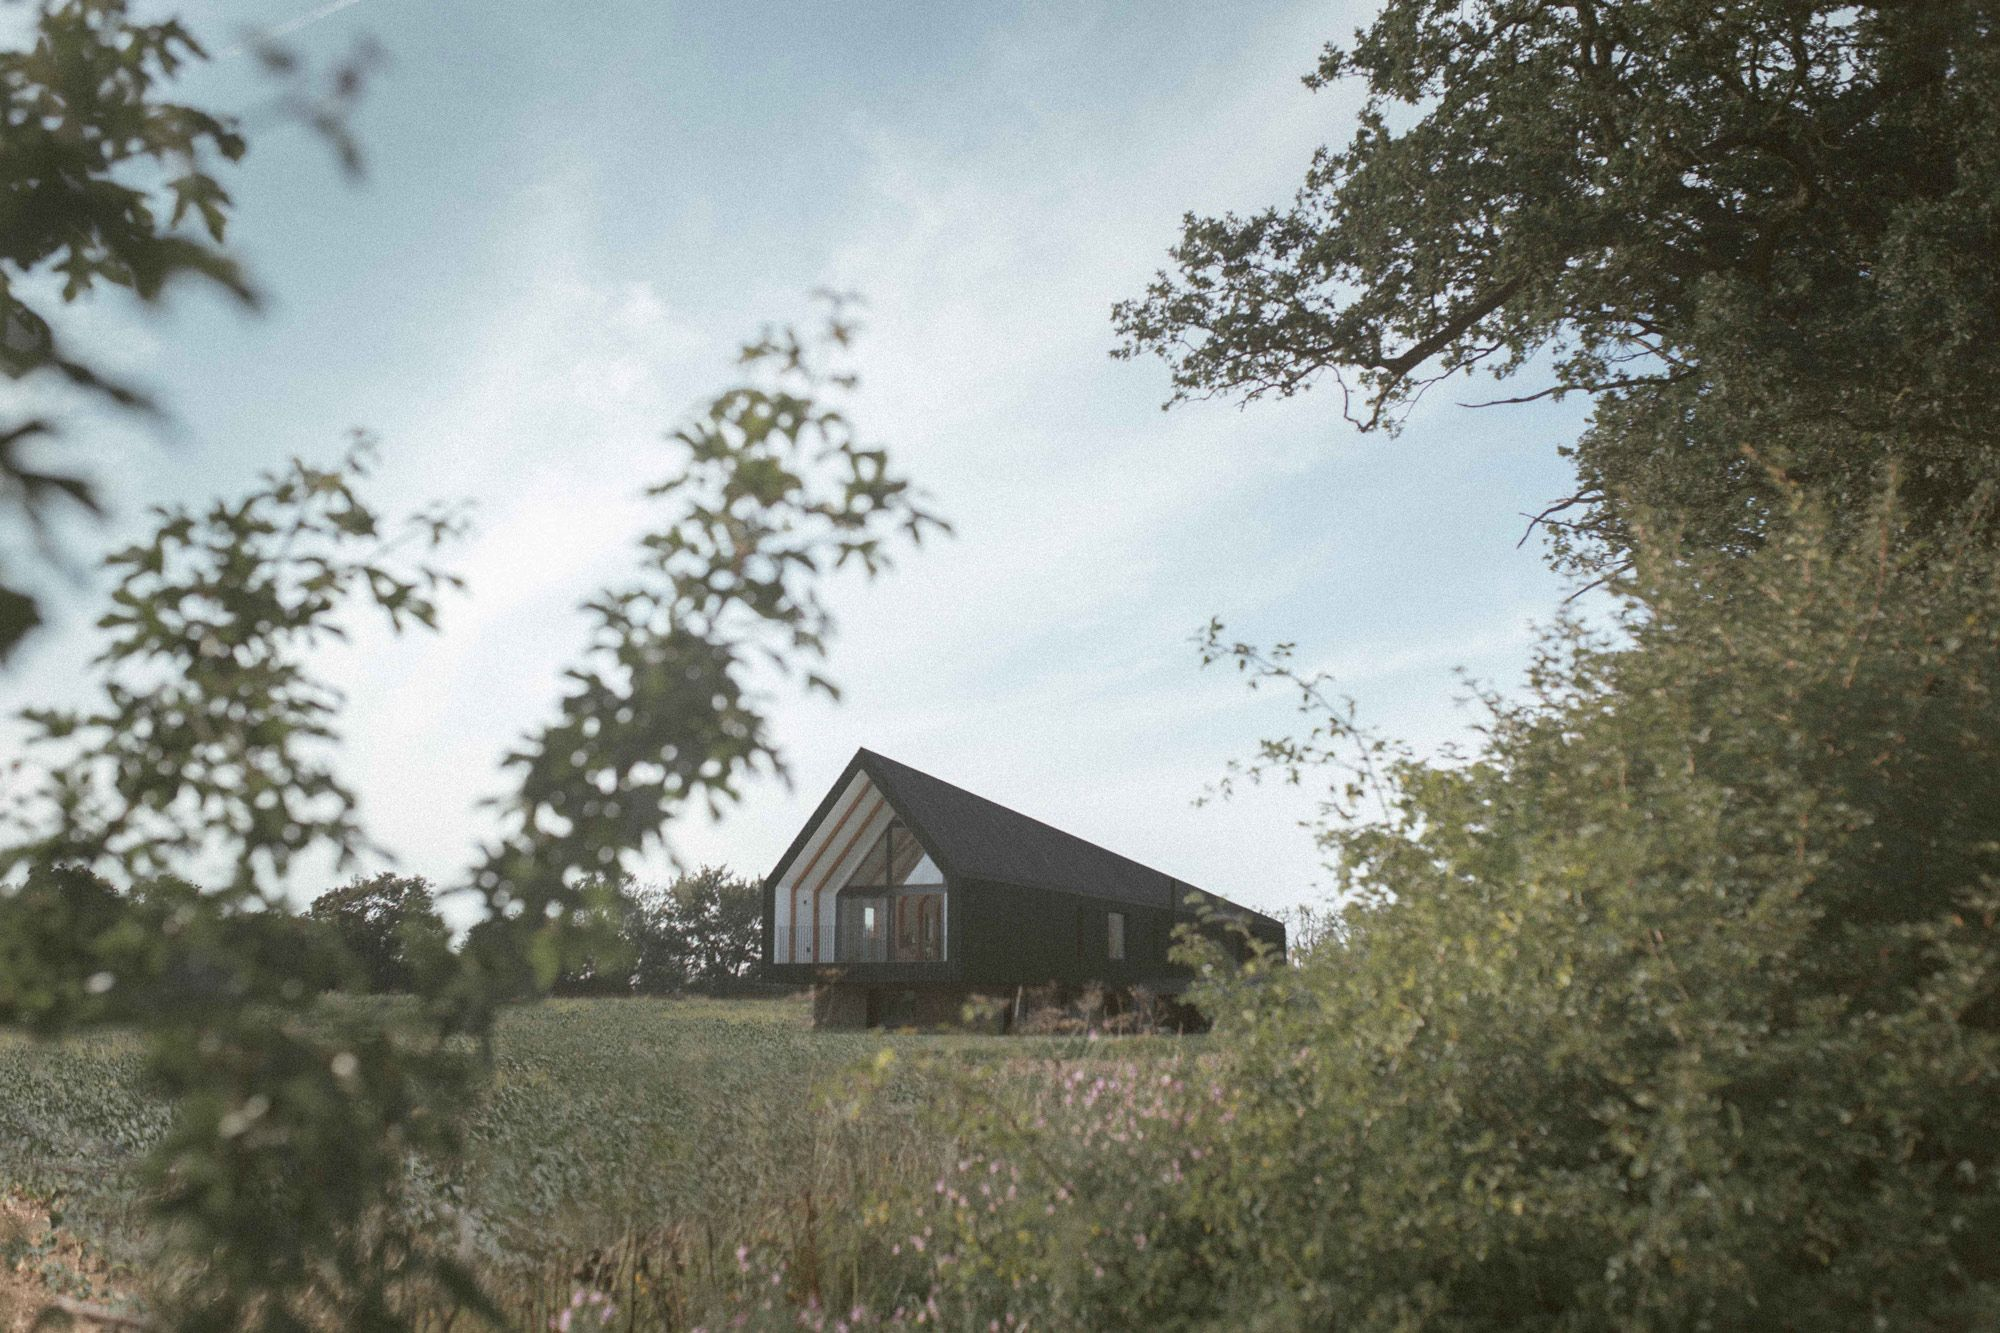 Studio_Bark_Black_Barn_Exterior-wide-1